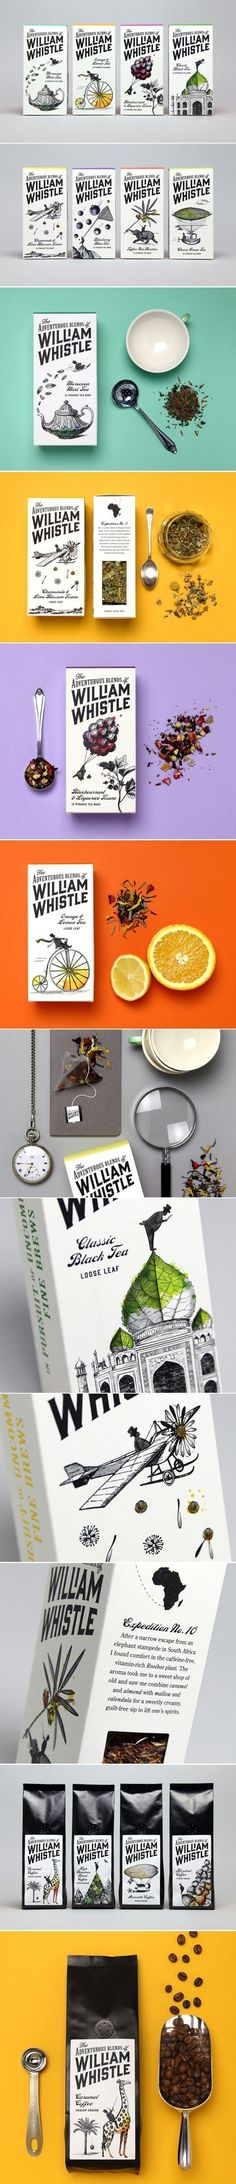 Unique packaging design. William Whistle.